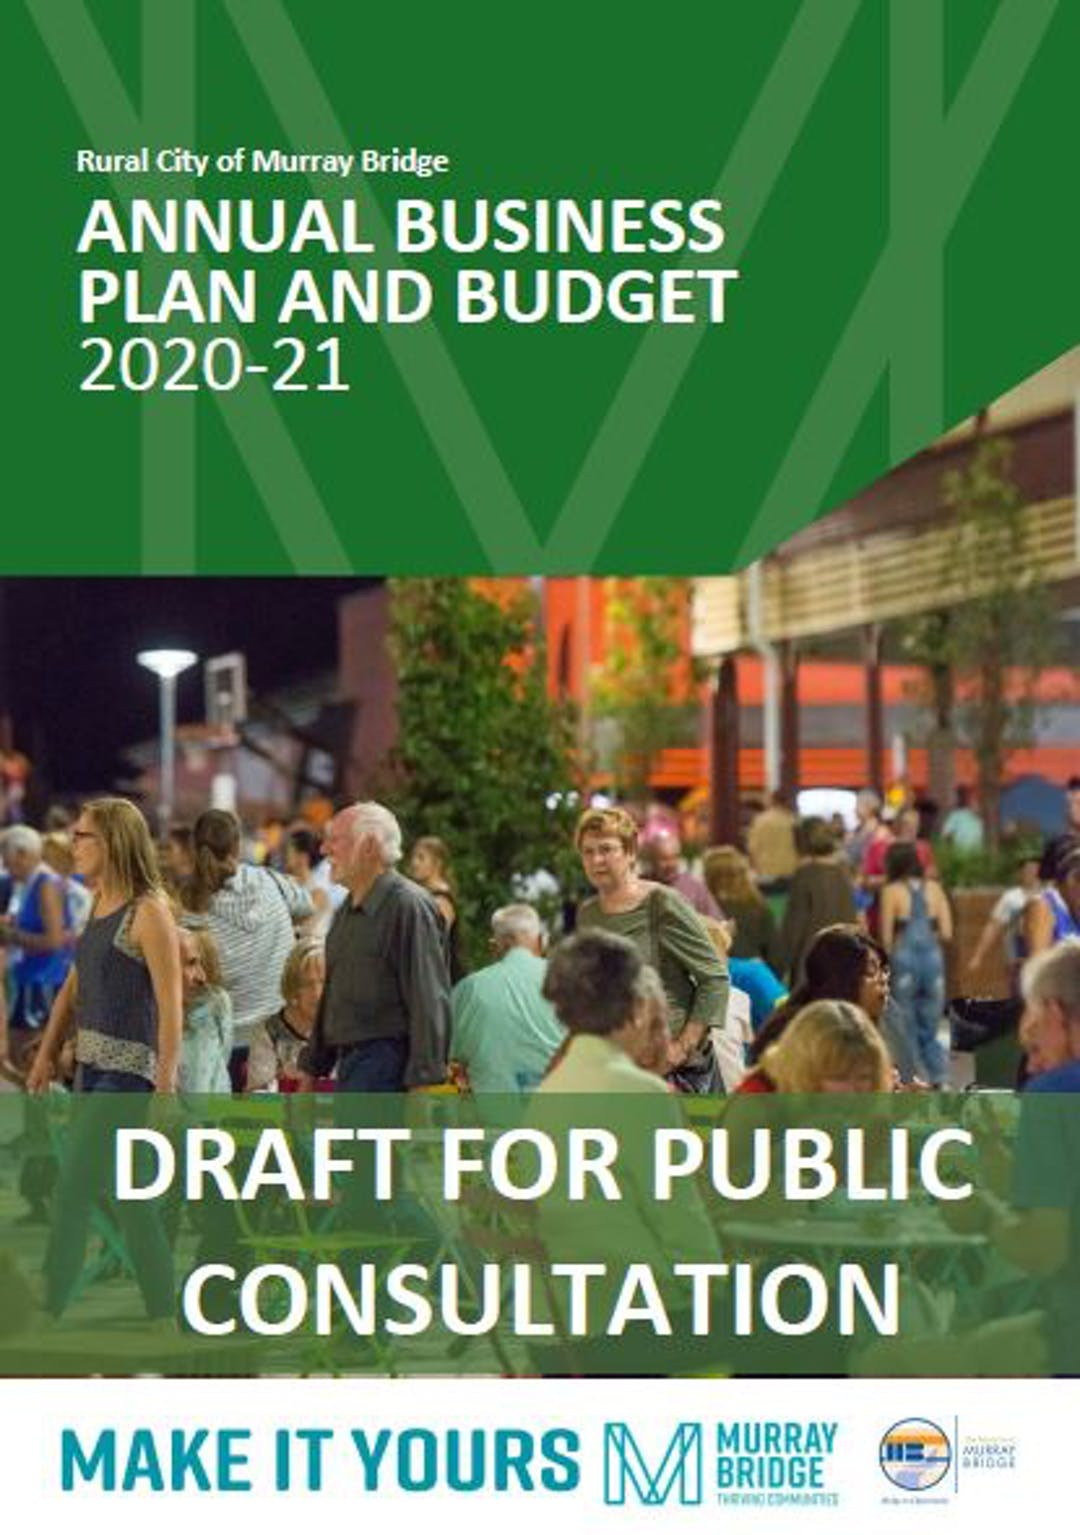 Annual Business Plan and Budget 2020-21